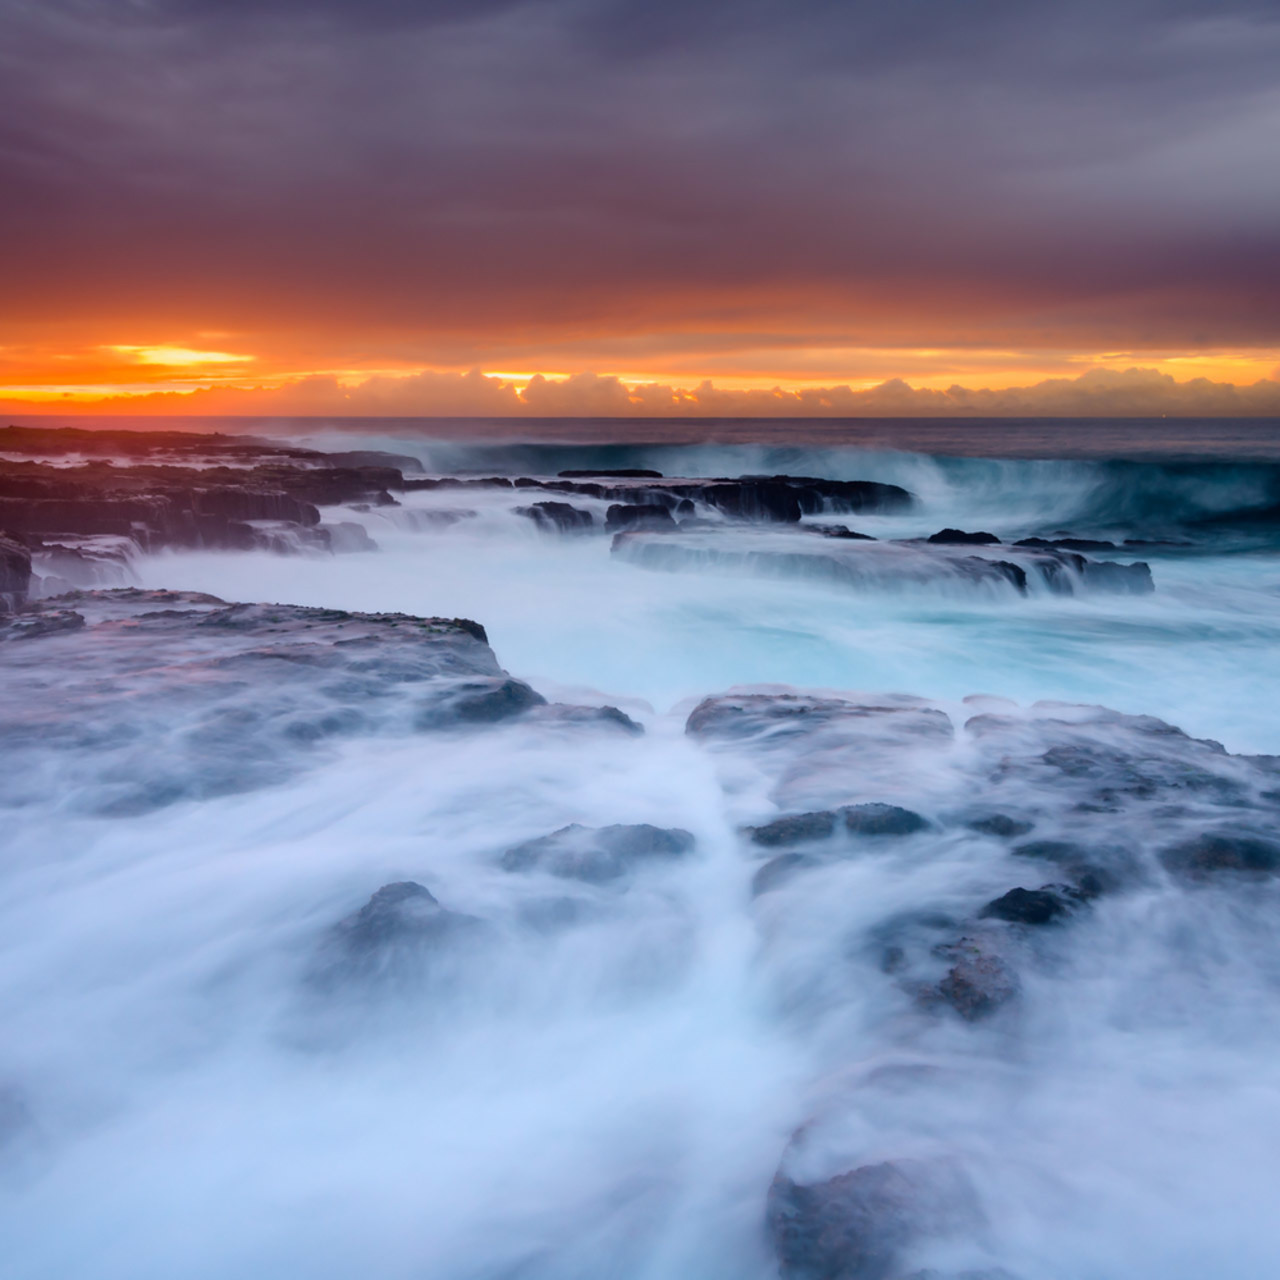 Draining seas   newcastle ocean baths nsw australia beach sunrise me4w4j